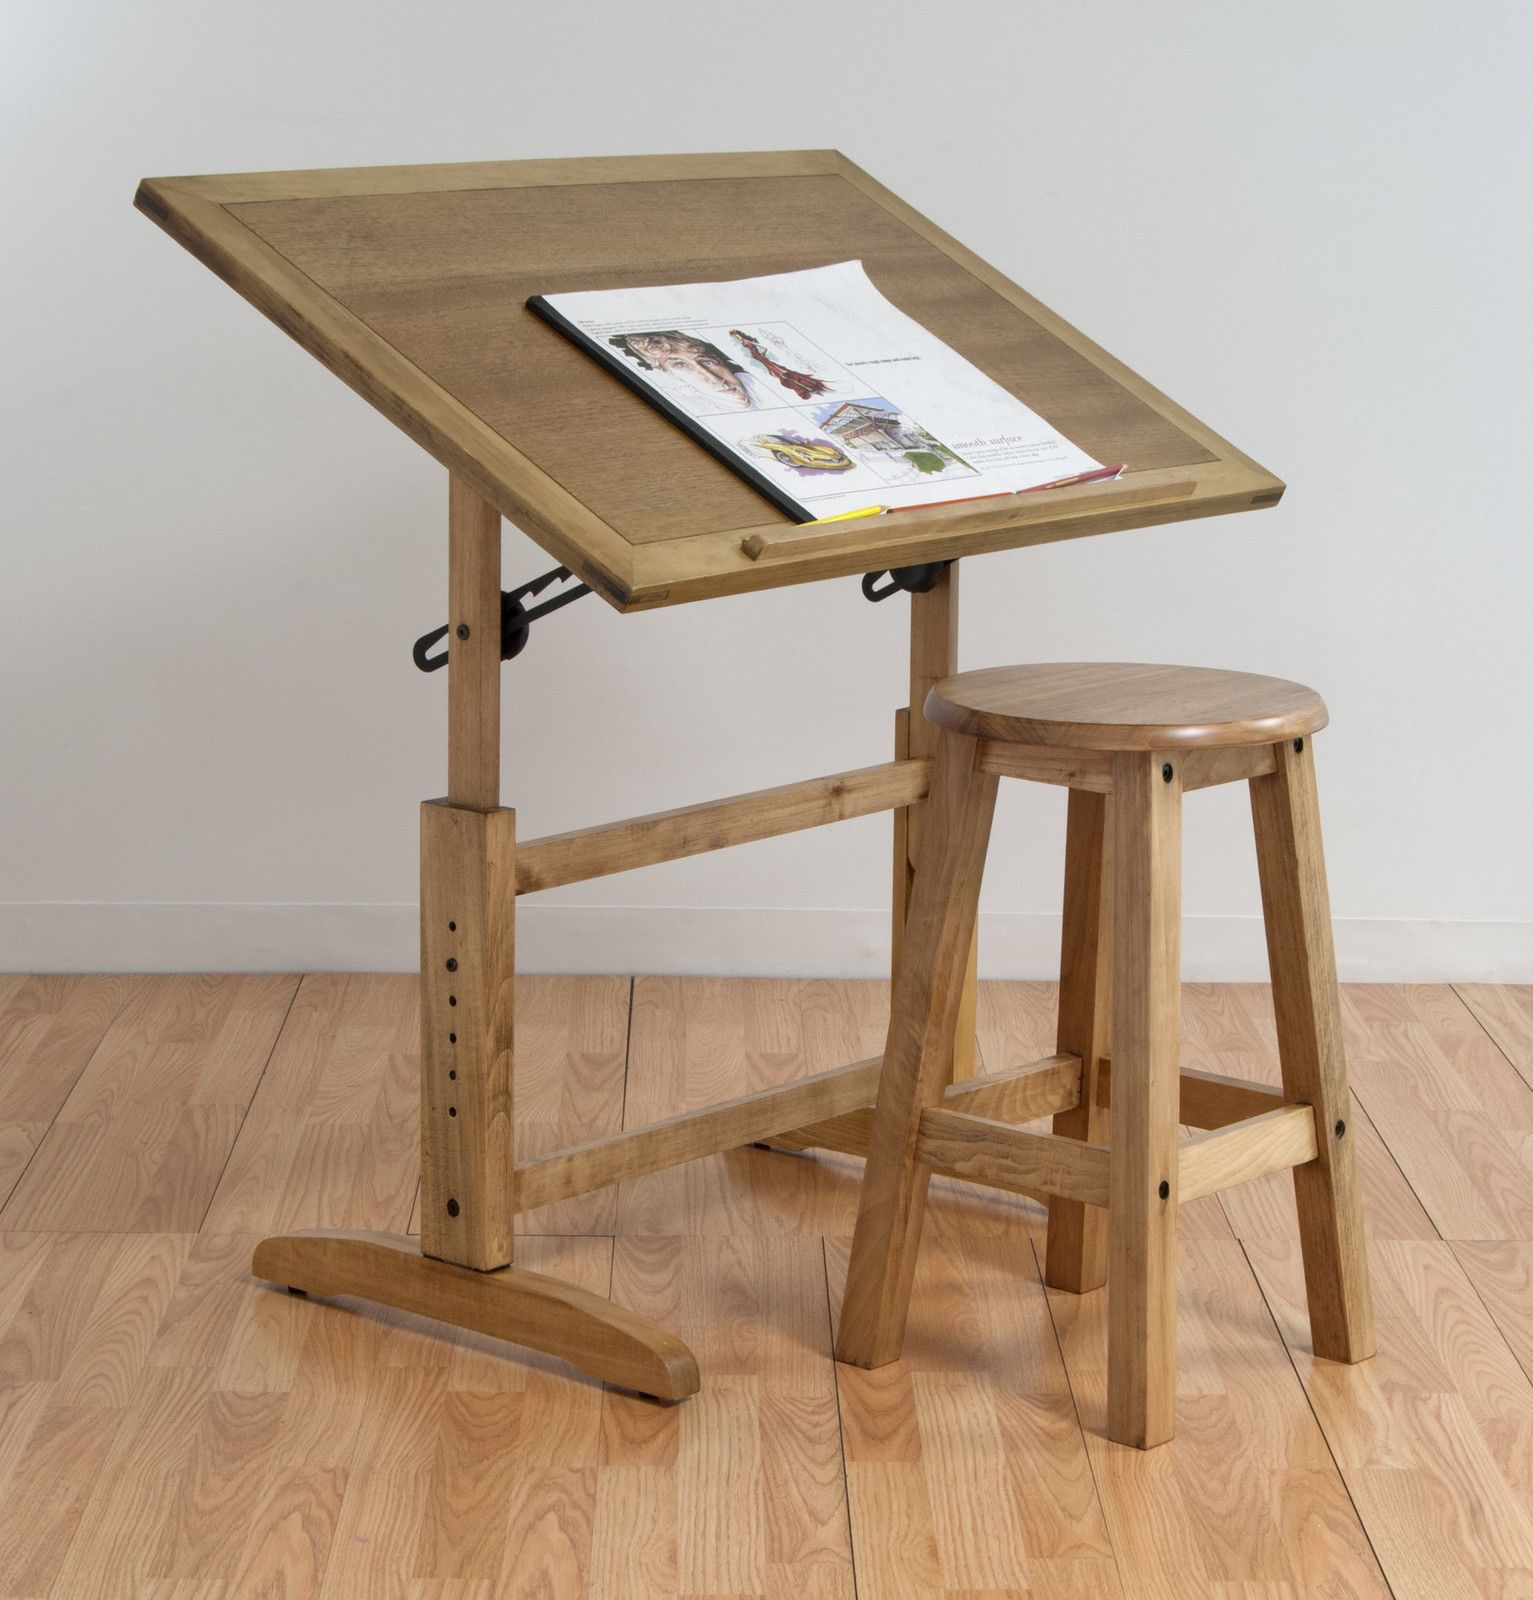 New Adjustable Drafting Wood Table Stool Drawing Studio Architect Station Desk Ebay Drawing Table Wood Drafting Table Table Stool